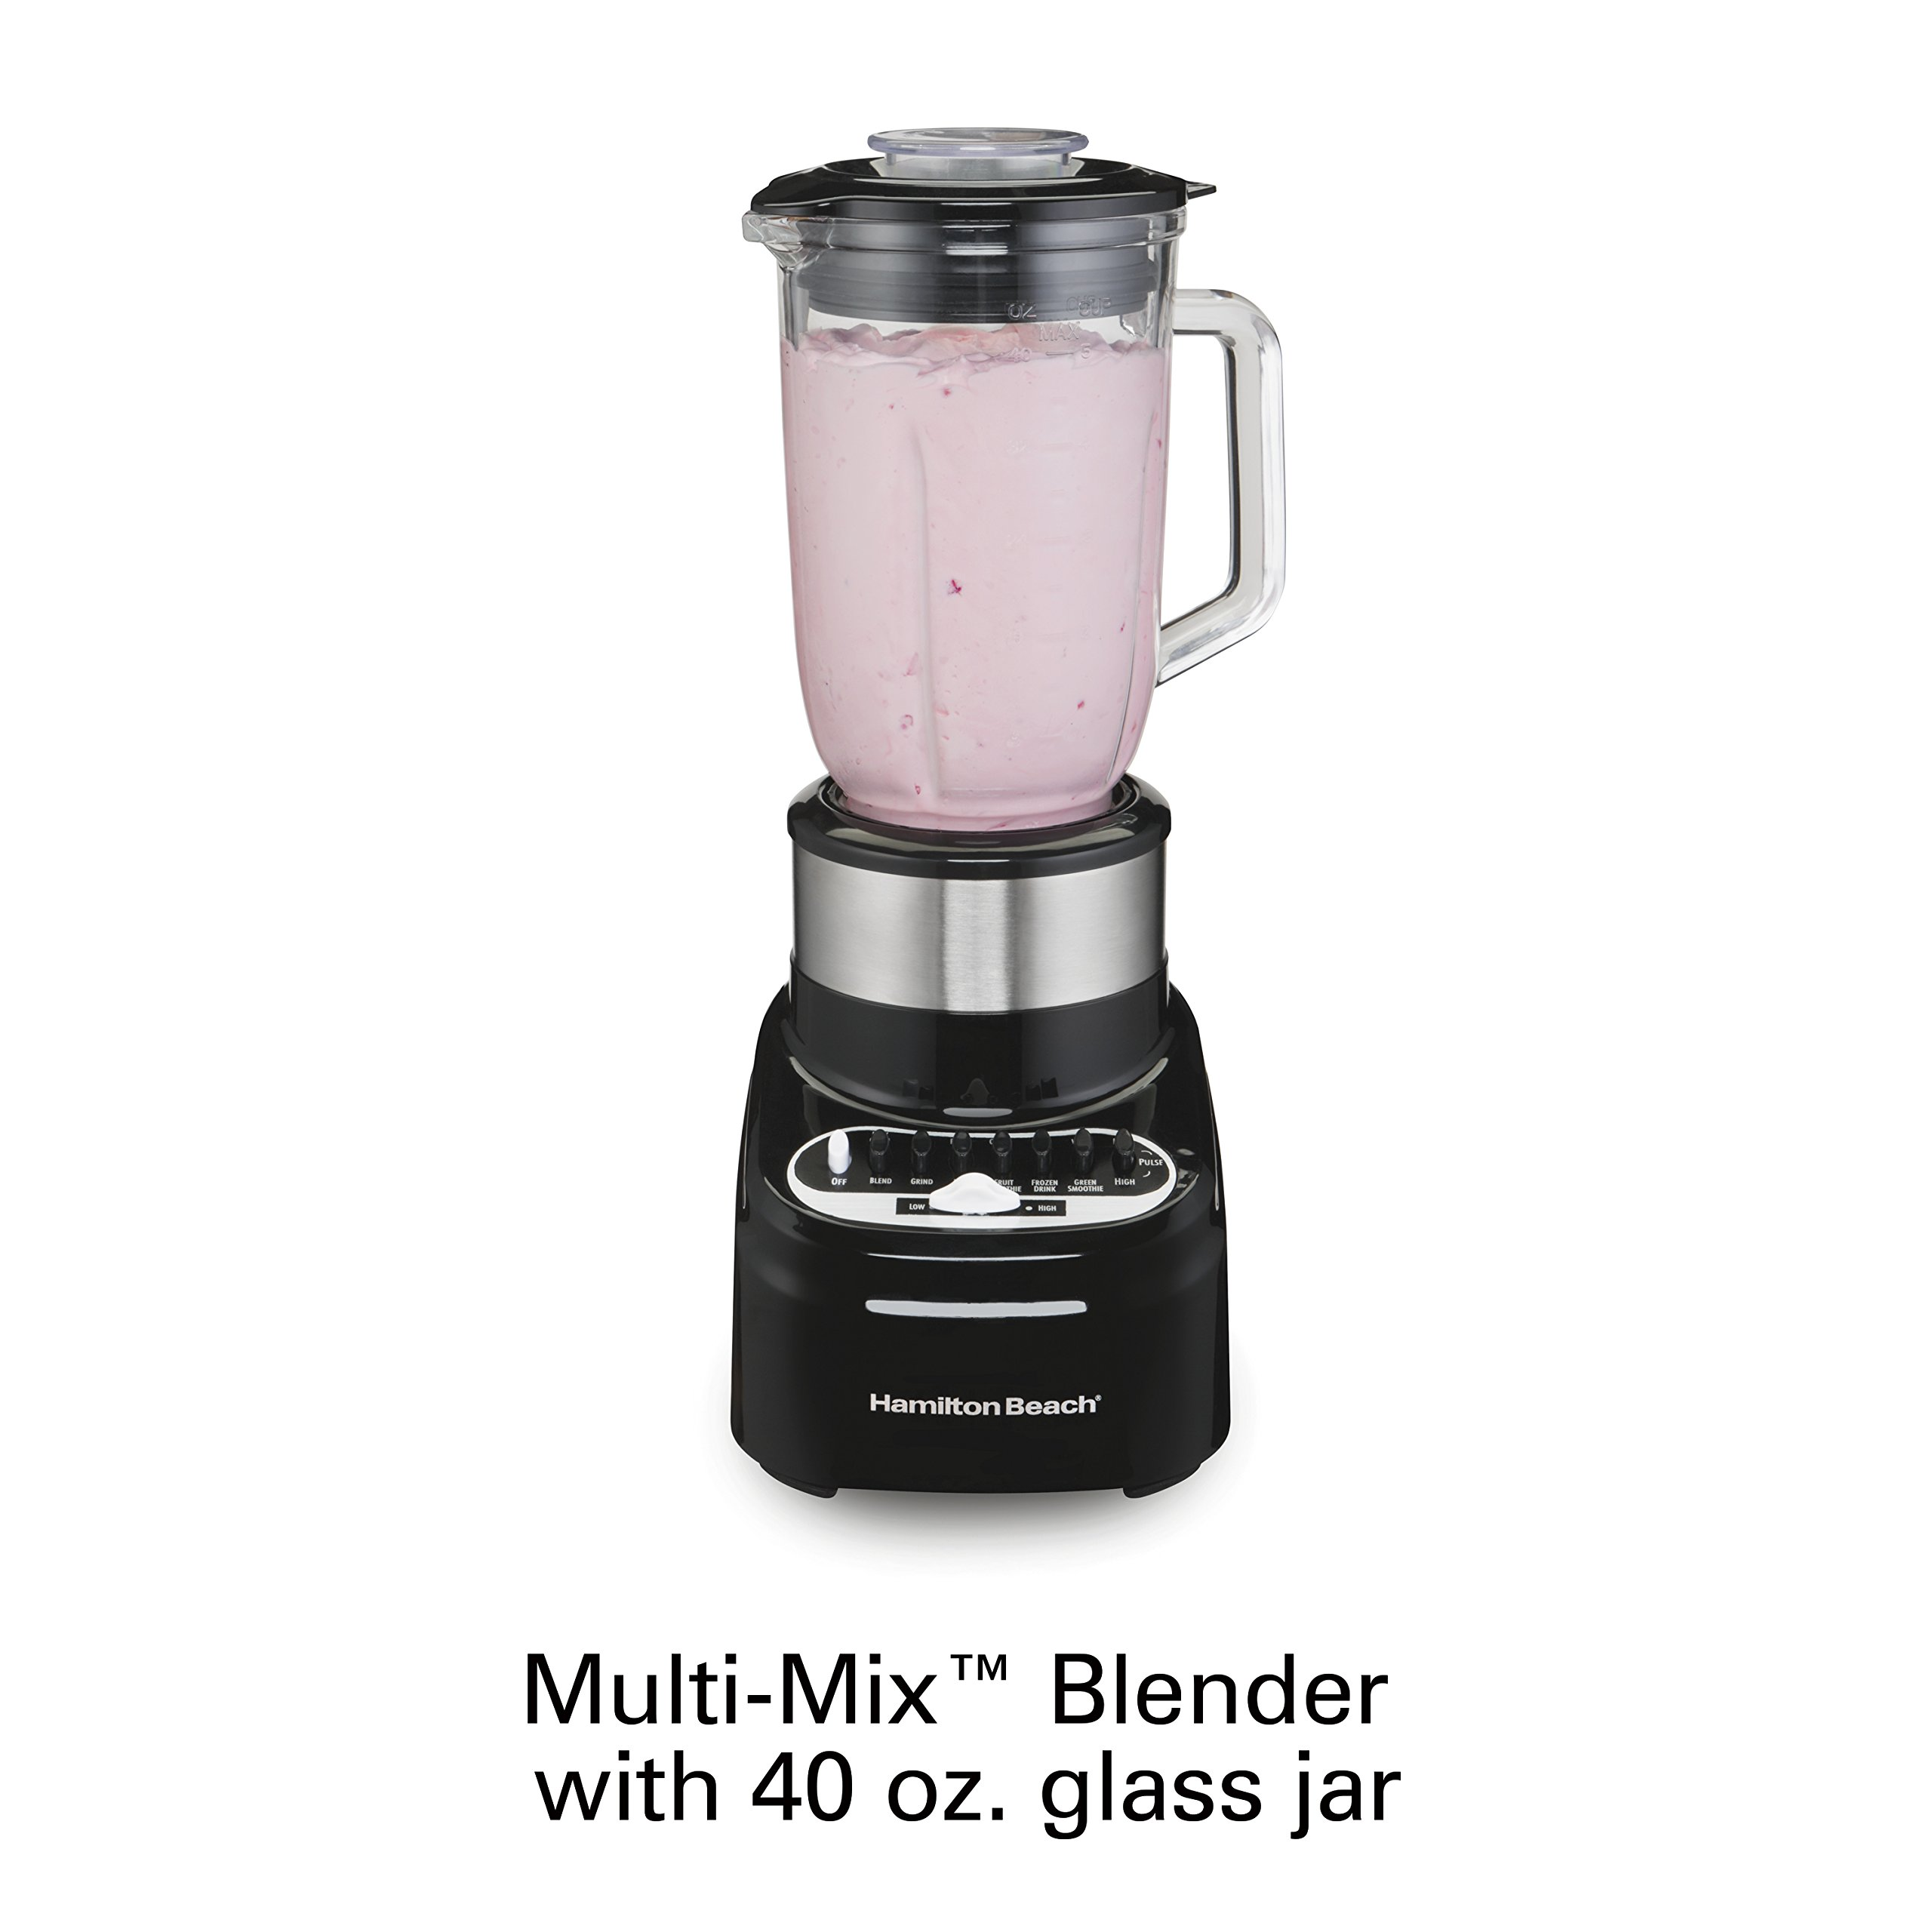 Hamilton Beach 54210 Blender with 40 Oz Glass Jar for Shakes and Smoothies, 14 Speeds, 800 Watts, Stainless Steel by Hamilton Beach (Image #6)